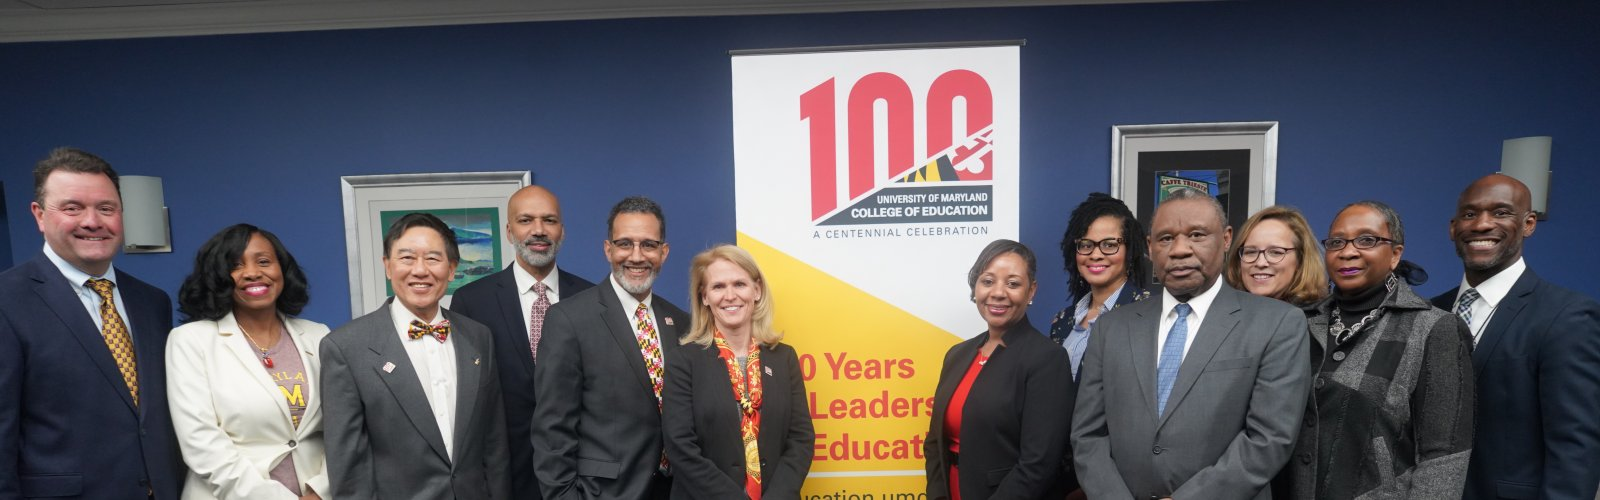 PGCPS and COE leadership at an MOU signing